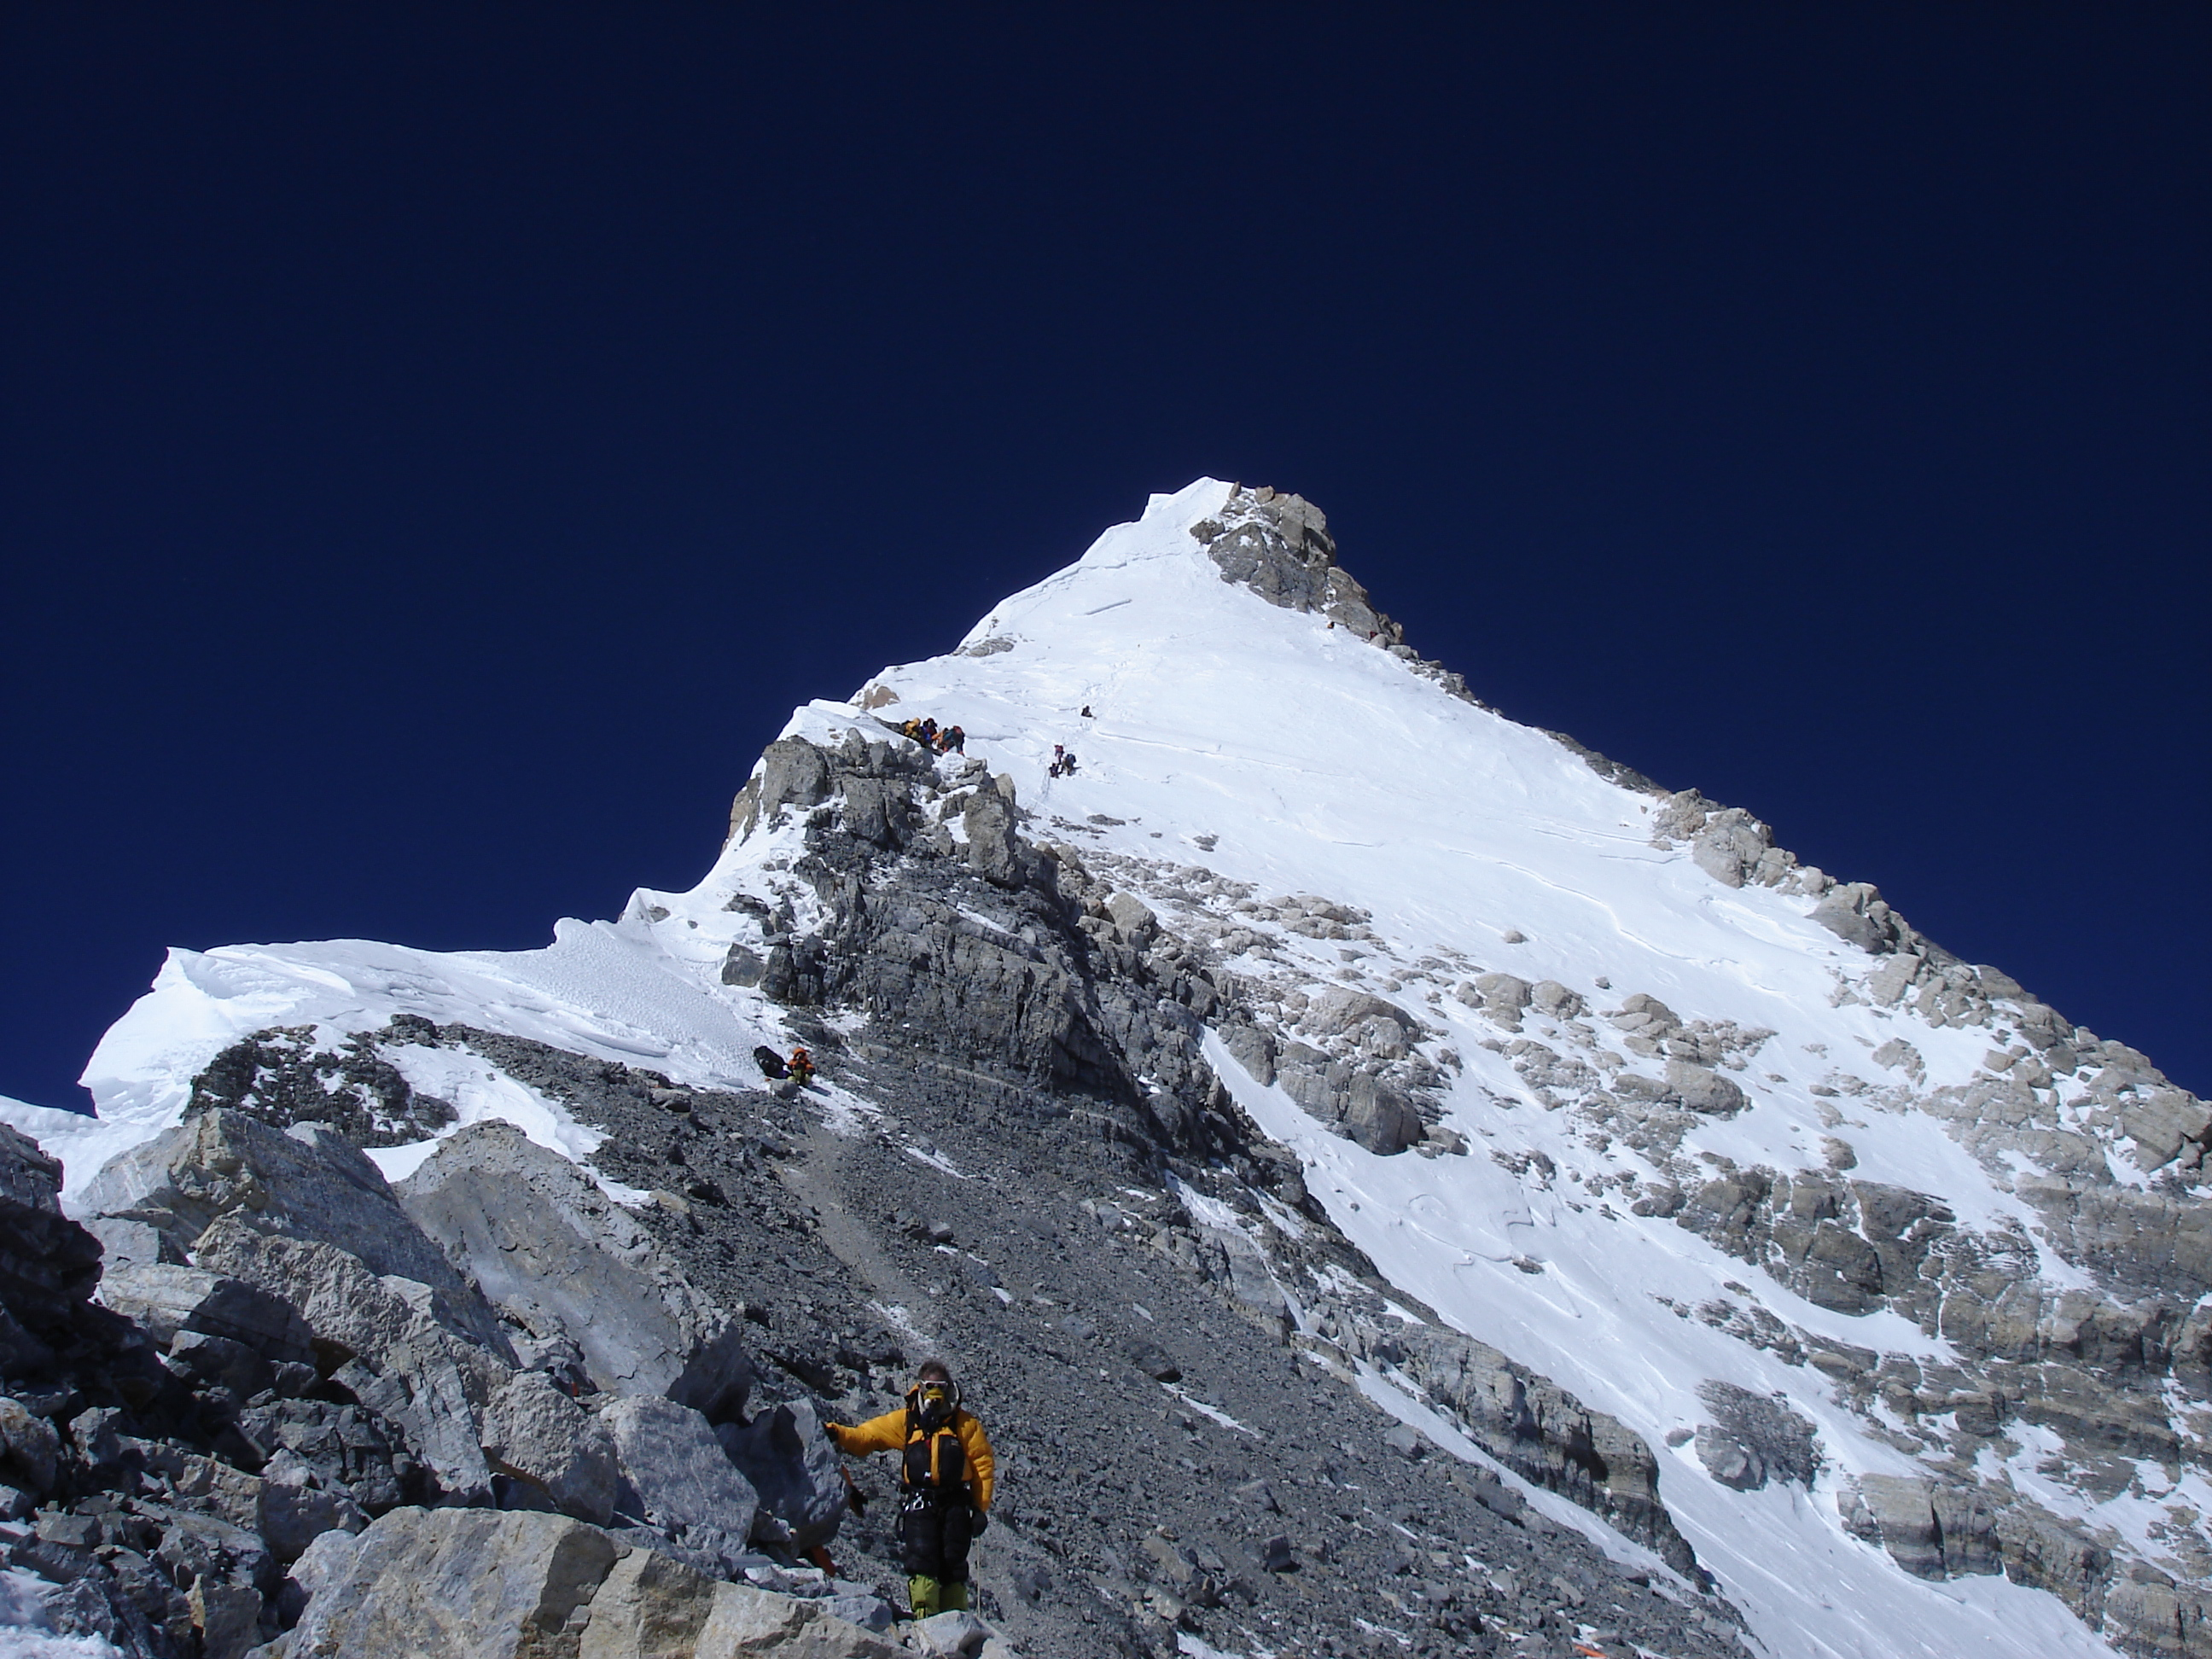 Image: Descending from the summit pyramid